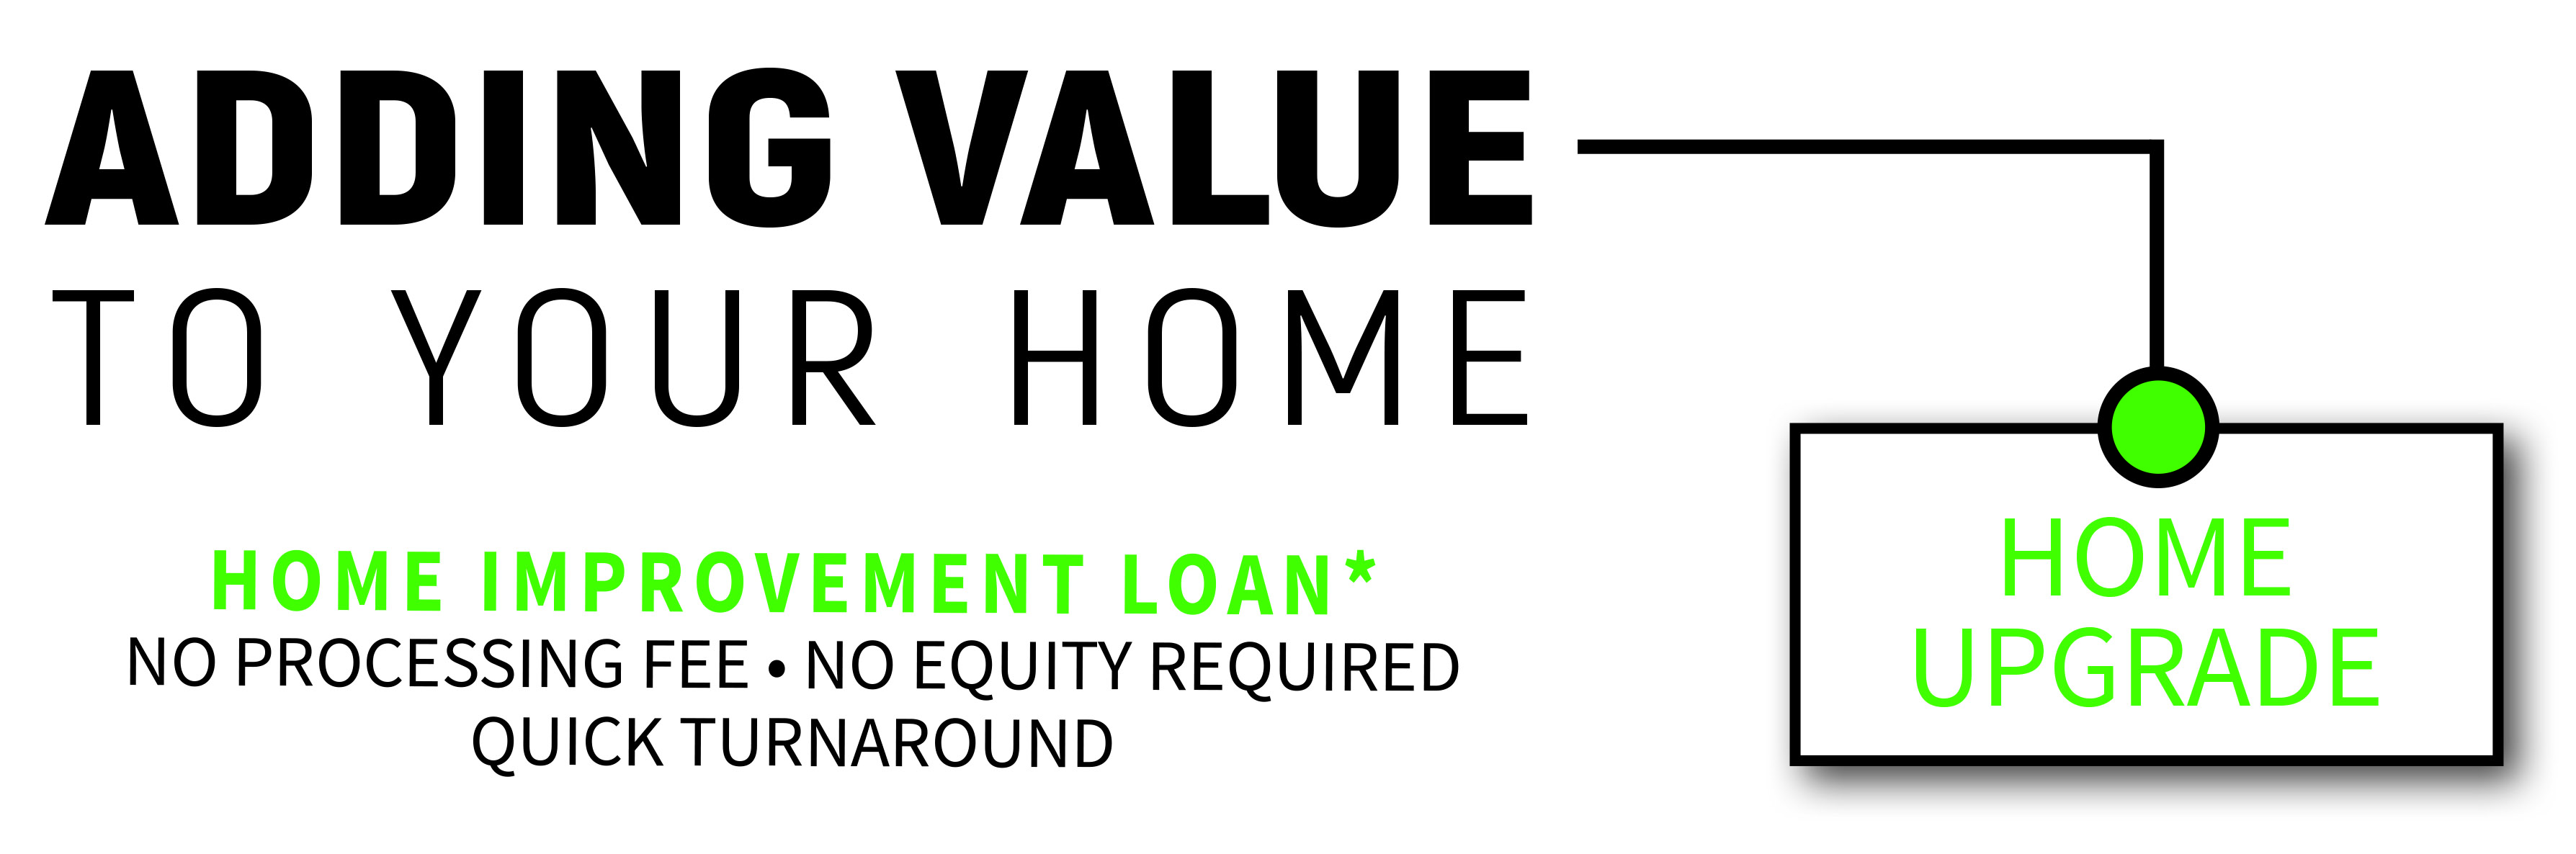 Home Improver Loan Special Image